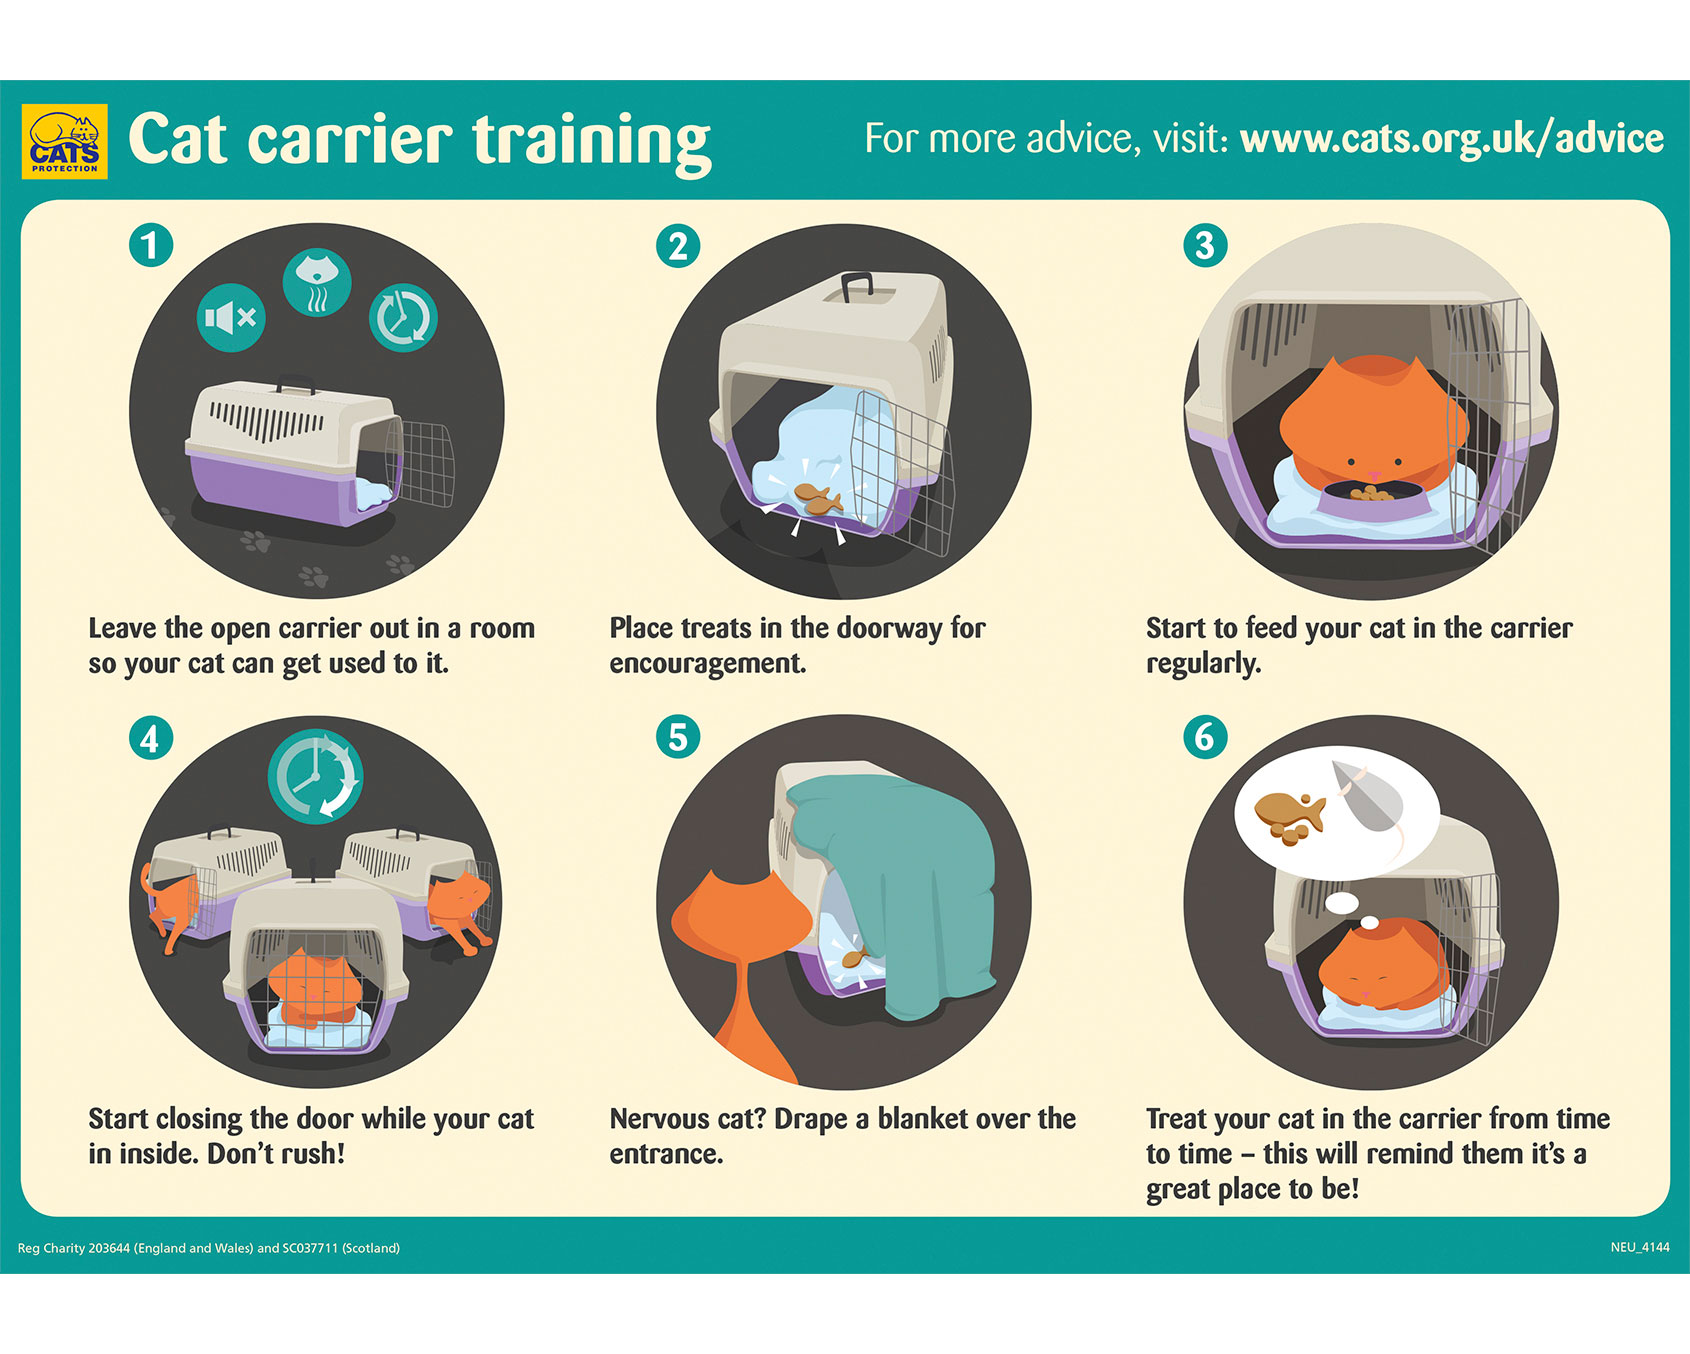 Cat Carrier Training visual guide